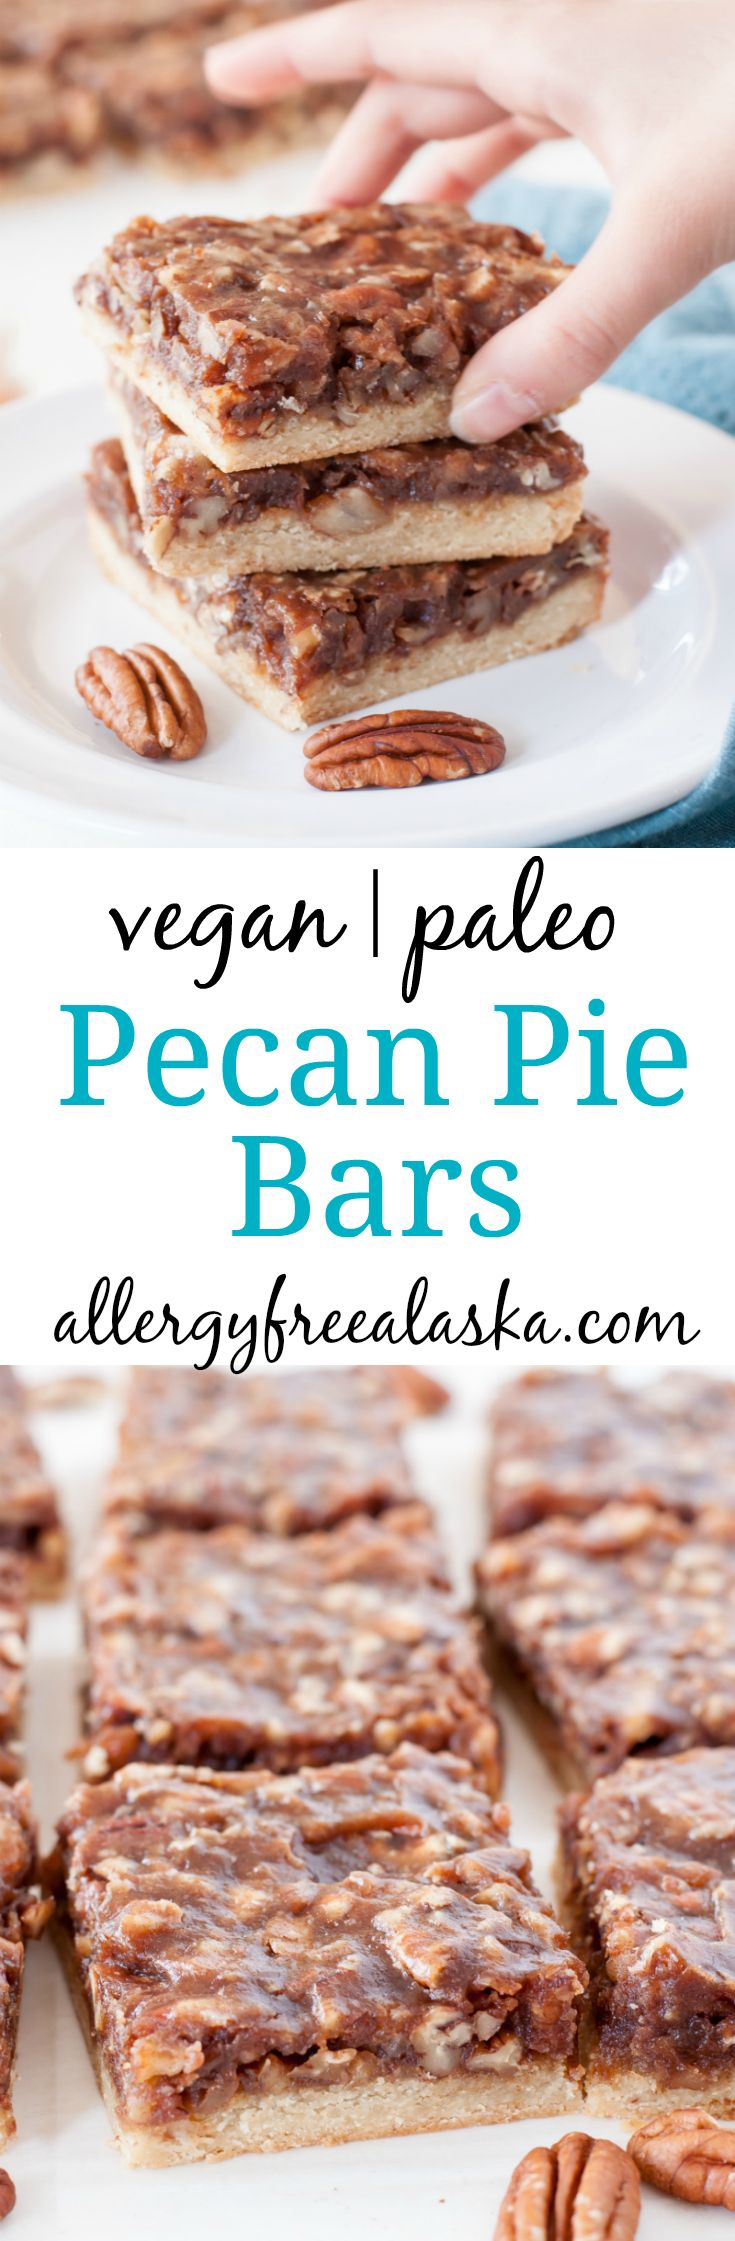 Decadent maple syrup and sweet dates combine to make a smooth and creamy filling for these Vegan Paleo Pecan Pie Bars. Everyone loves this recipe!